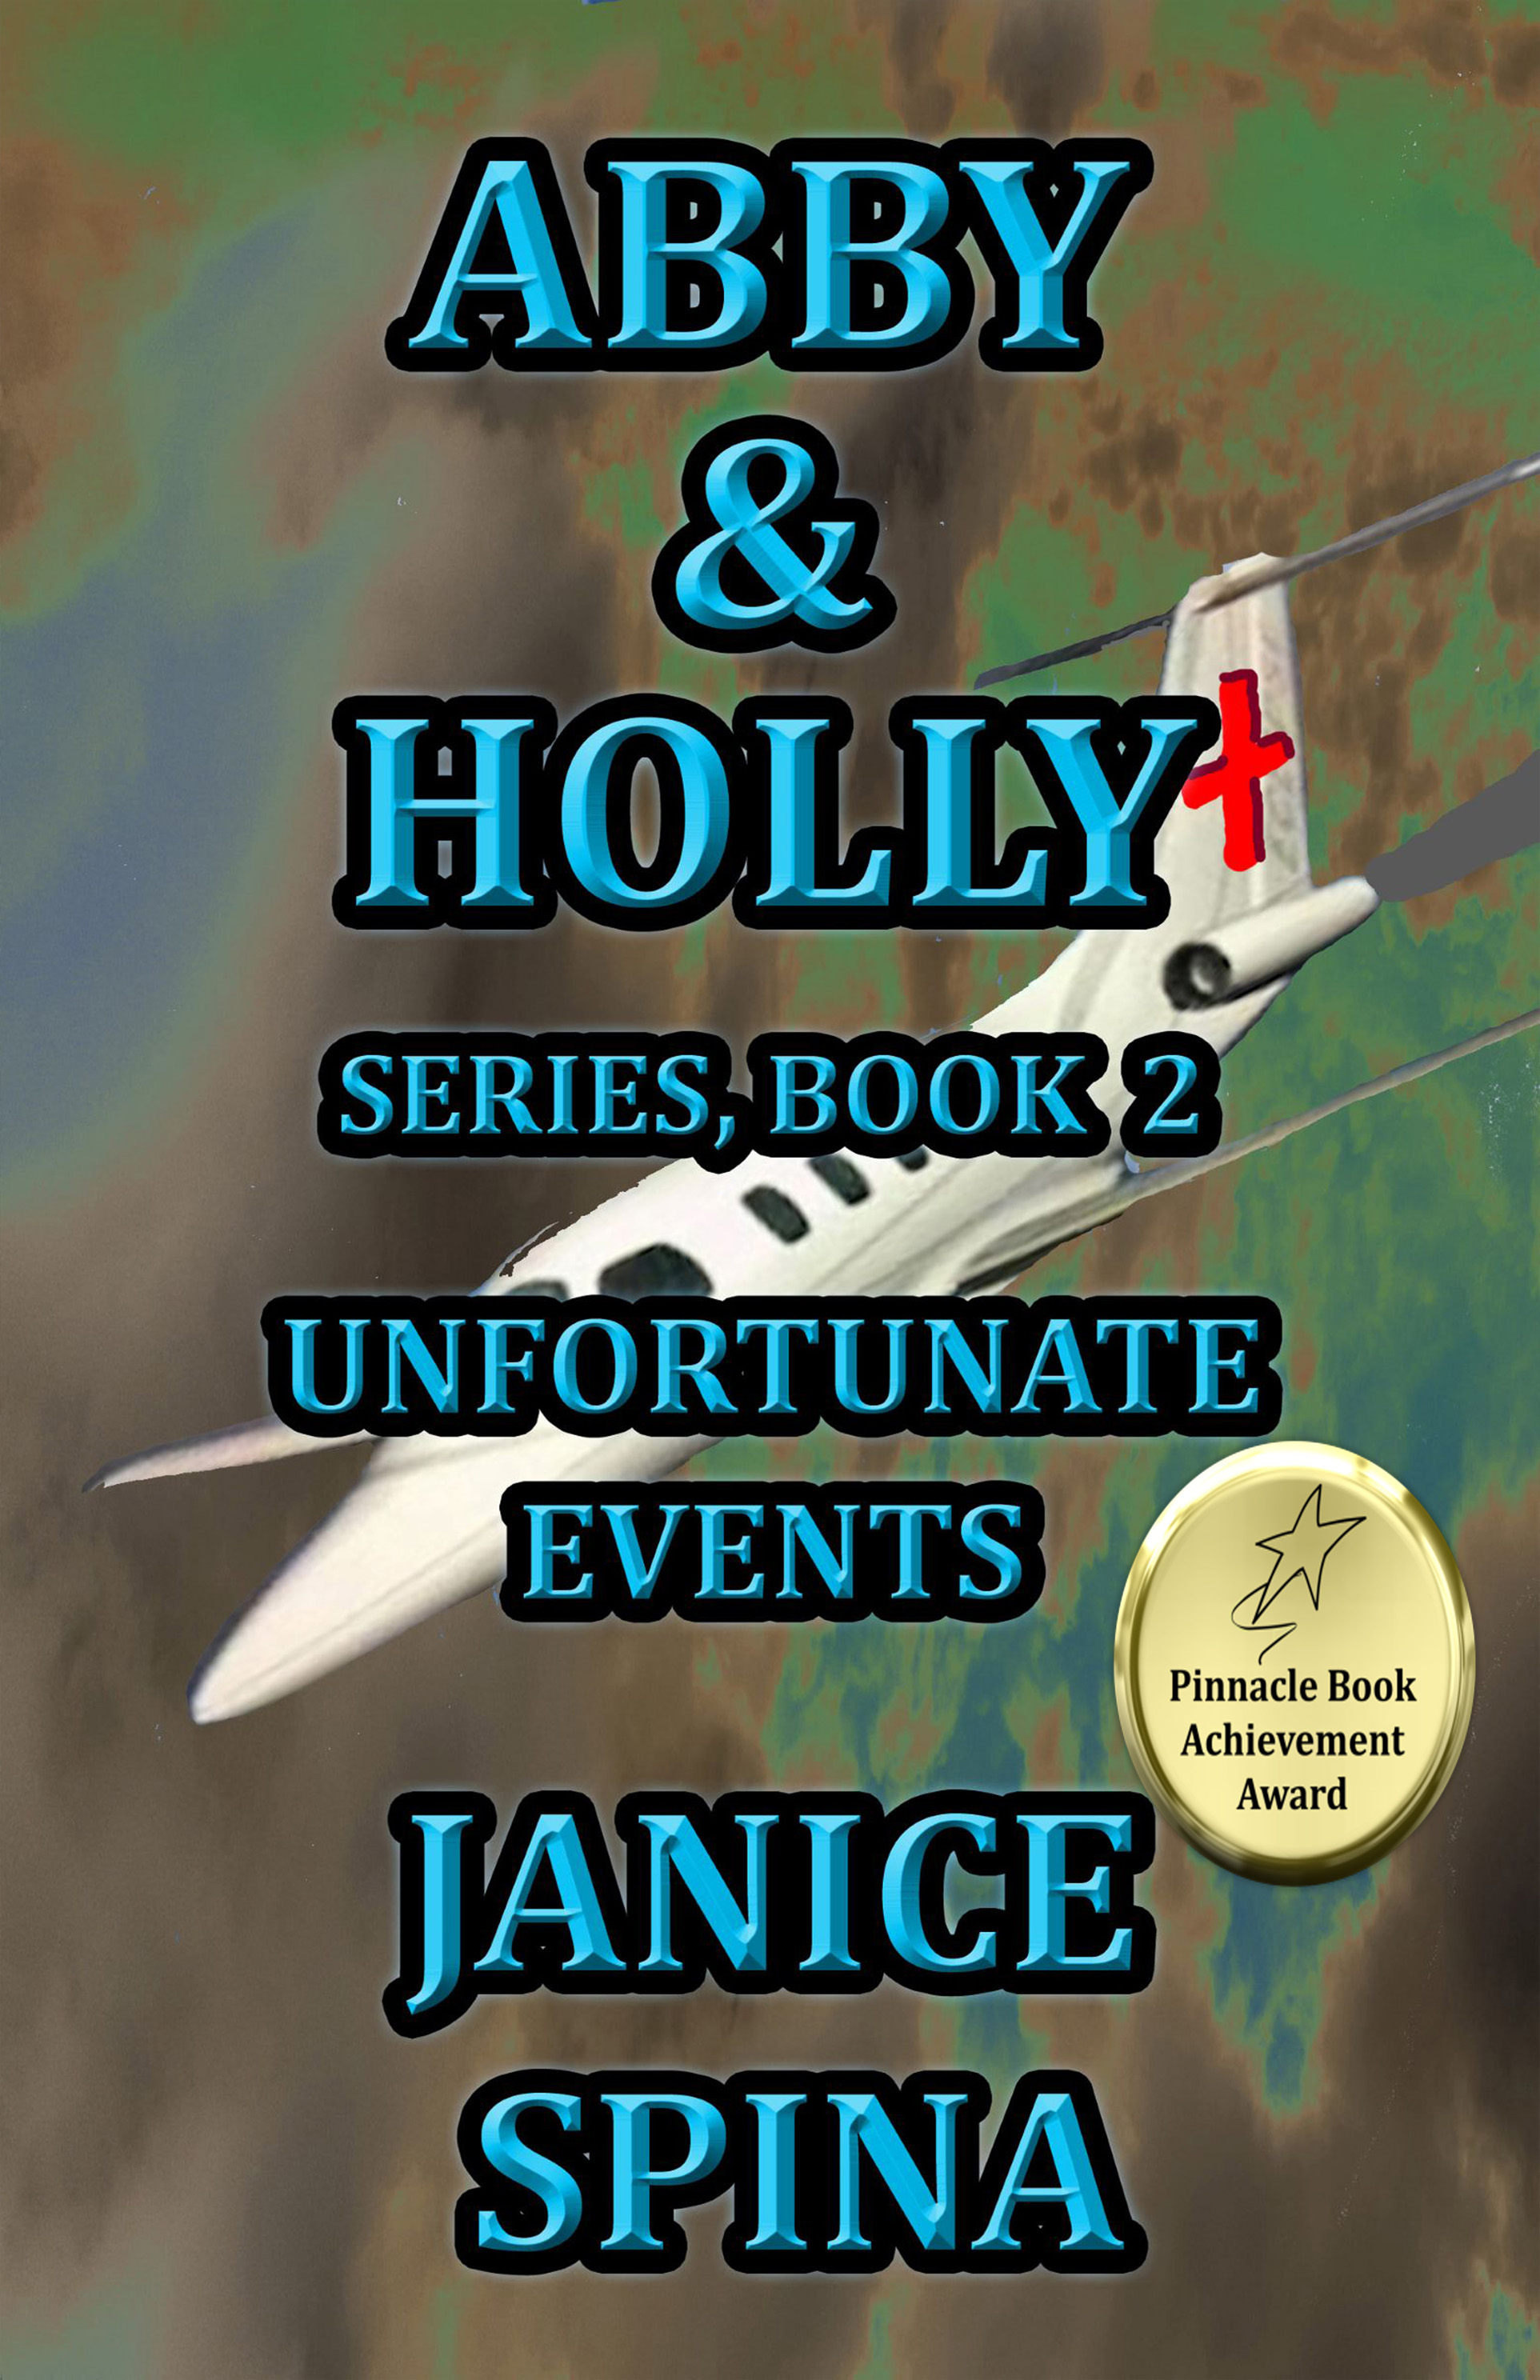 Abby & Holly Series, Book 2, Unfortunate Events